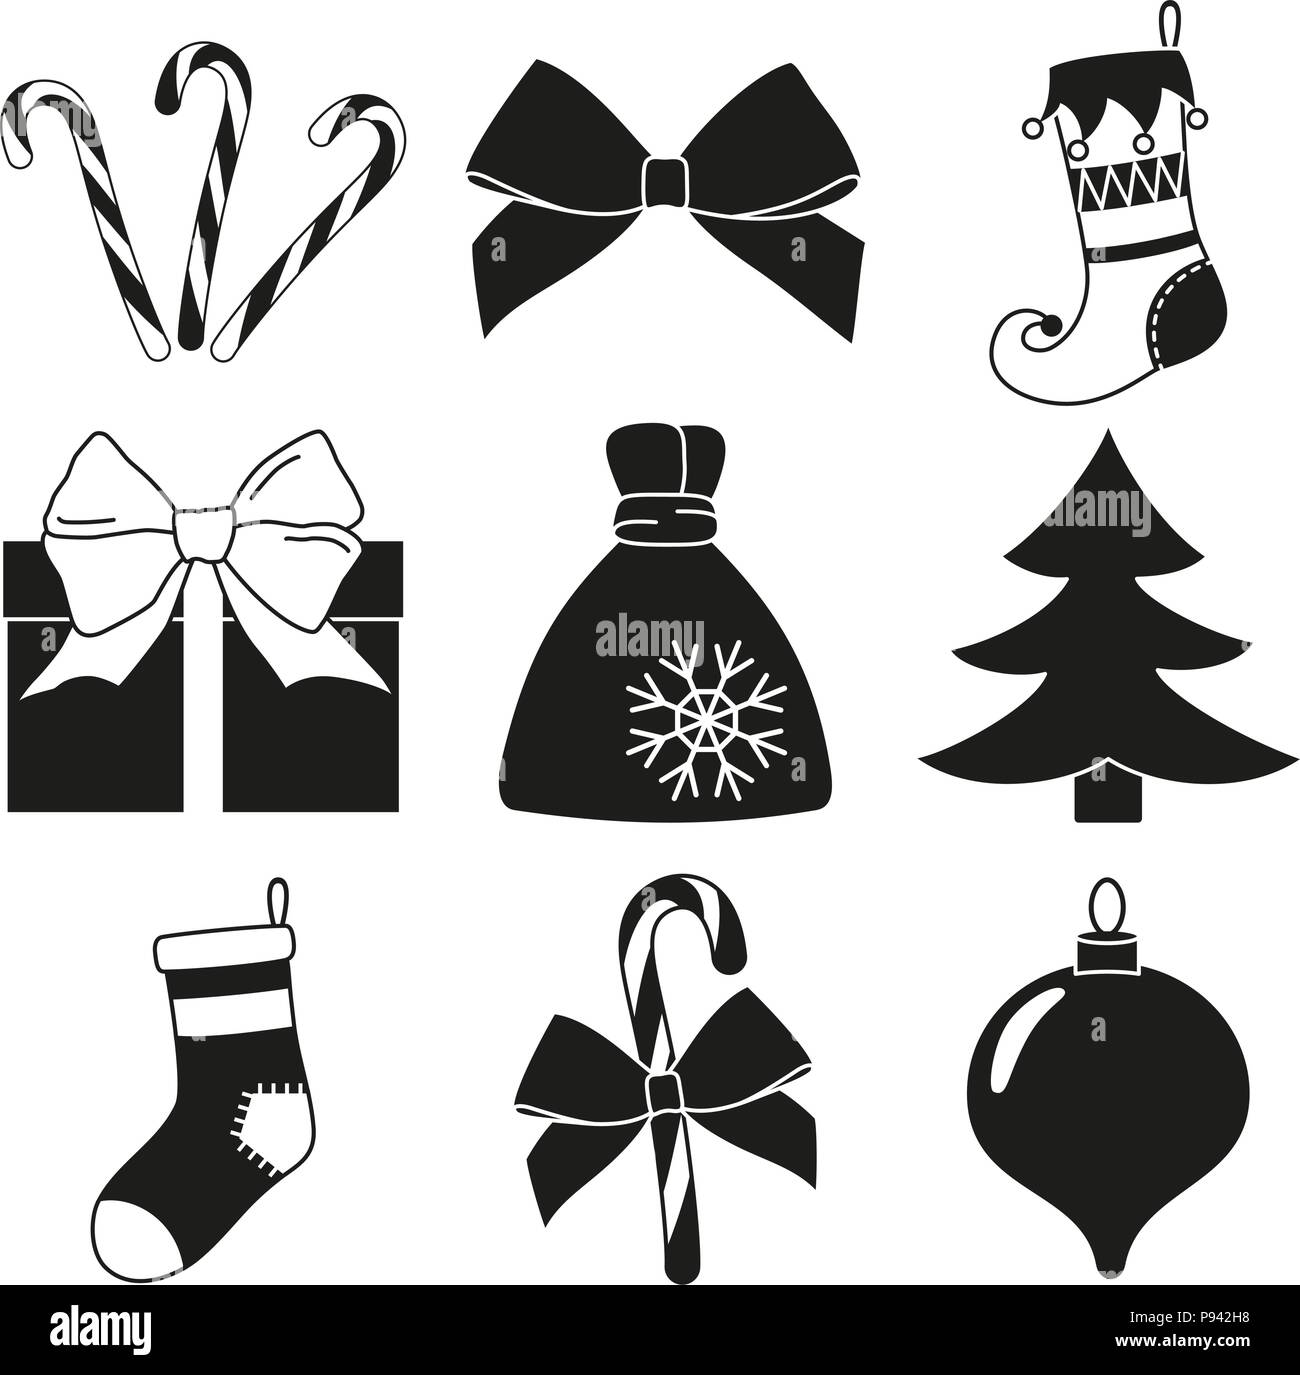 black and white 9 christmas elements silhouette set new year holiday decorations vector illustration for icon logo sticker patch label badge e